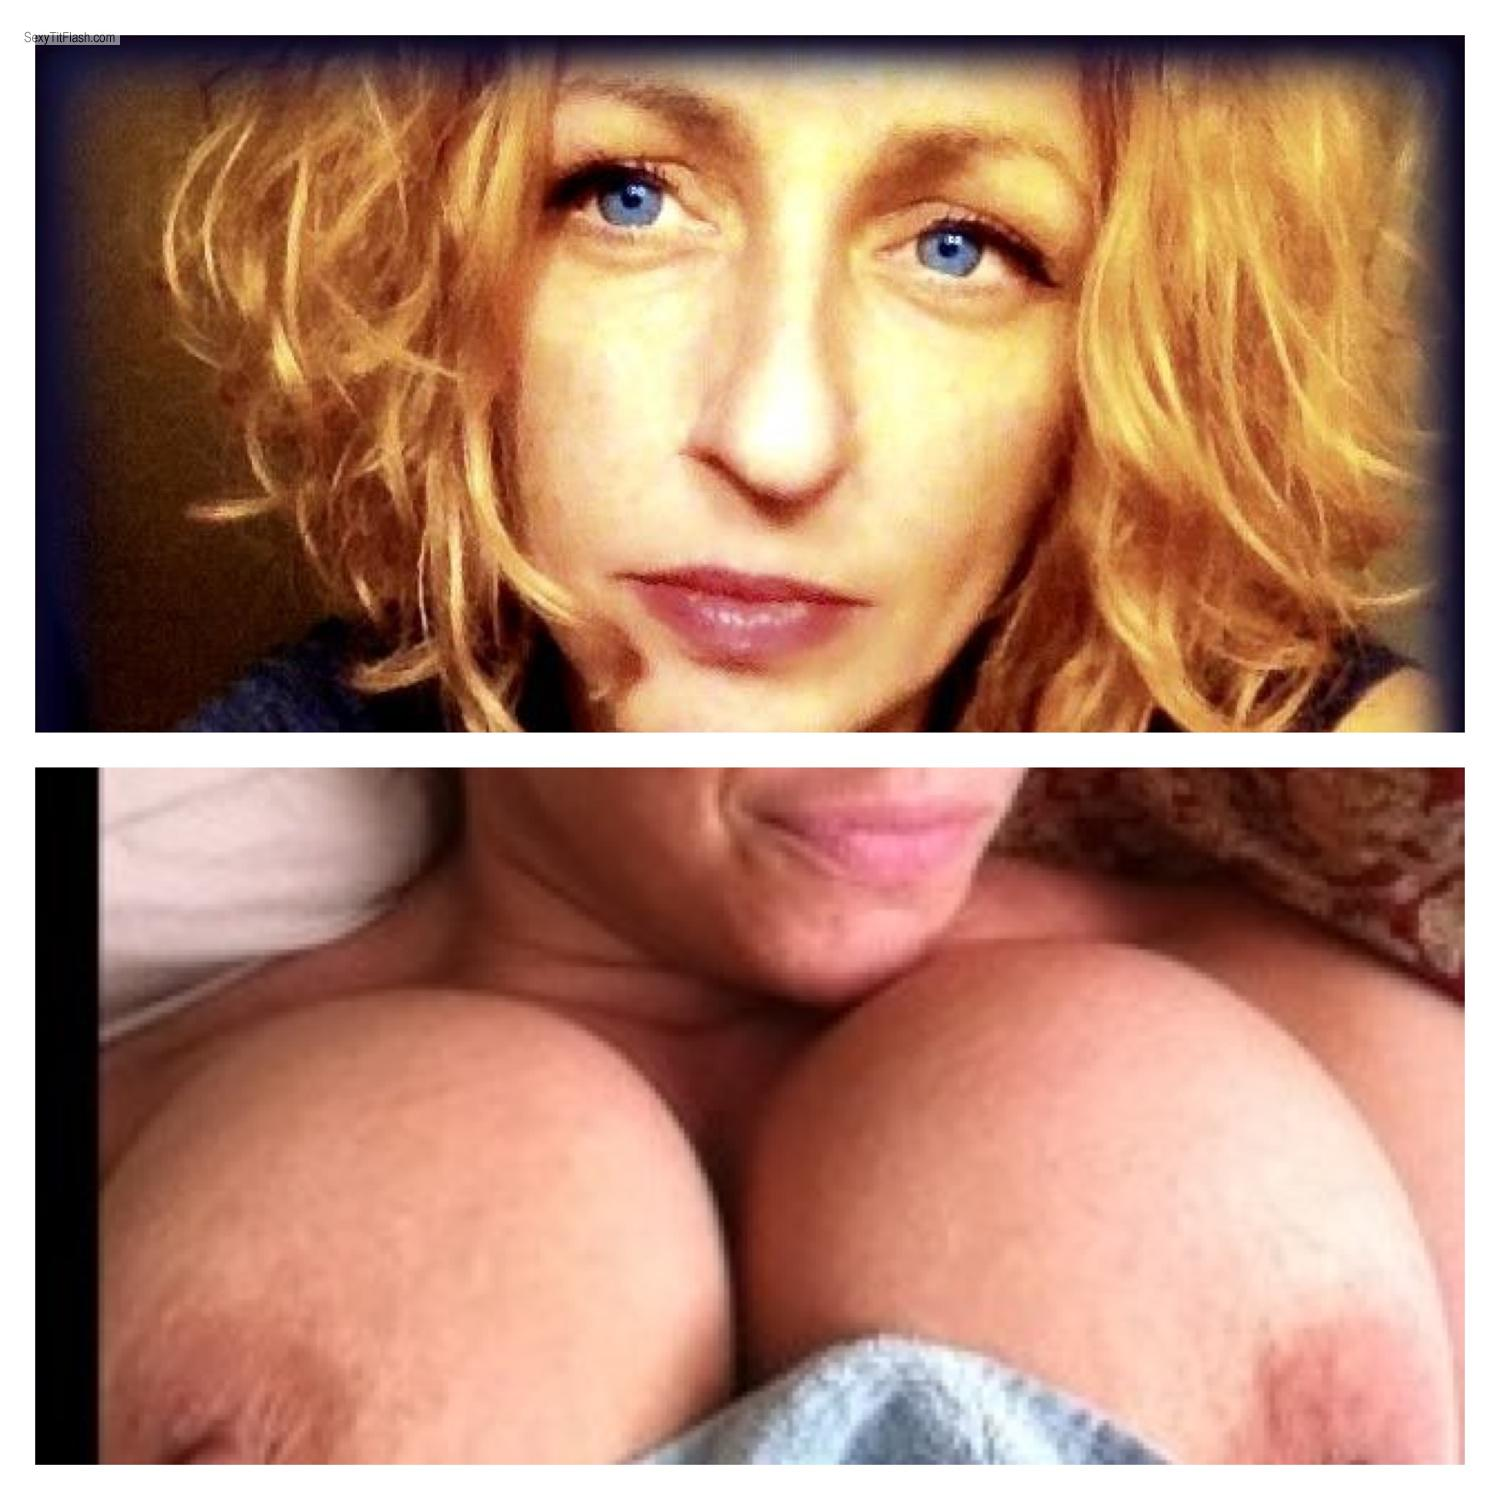 Tit Flash: Very Big Tits By IPhone - Cheryl from United States